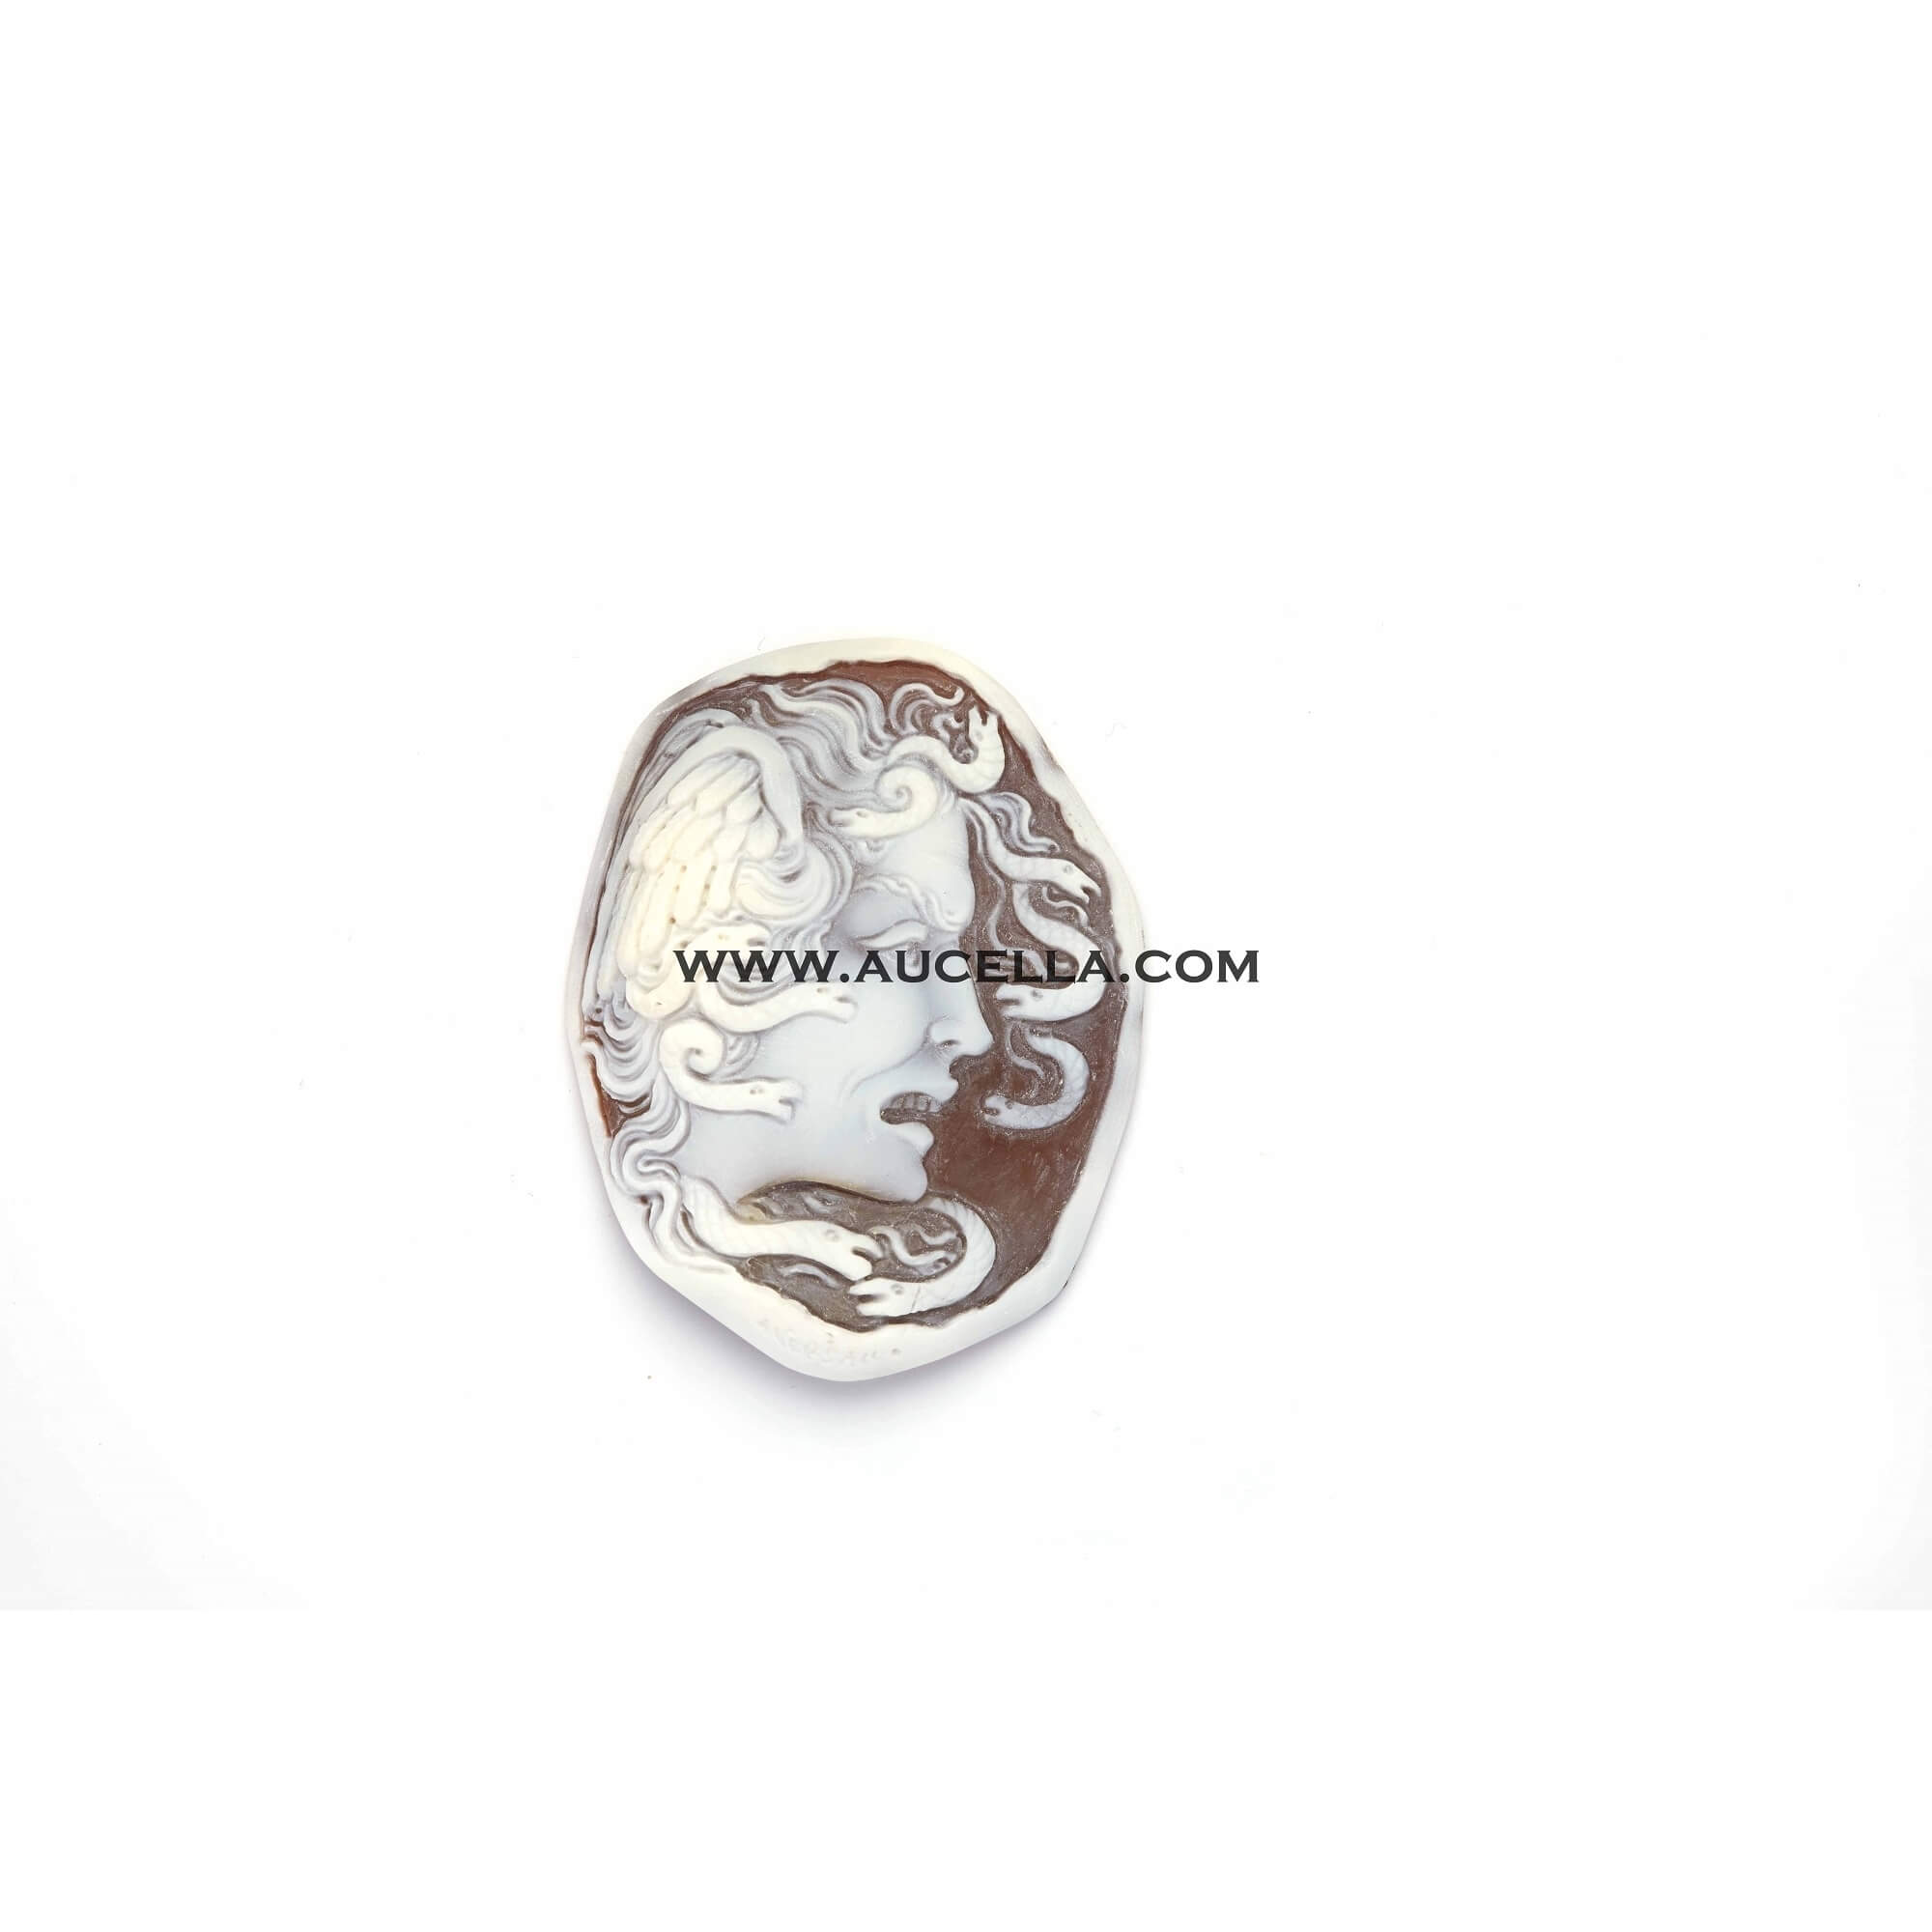 Cameo signed Aversano